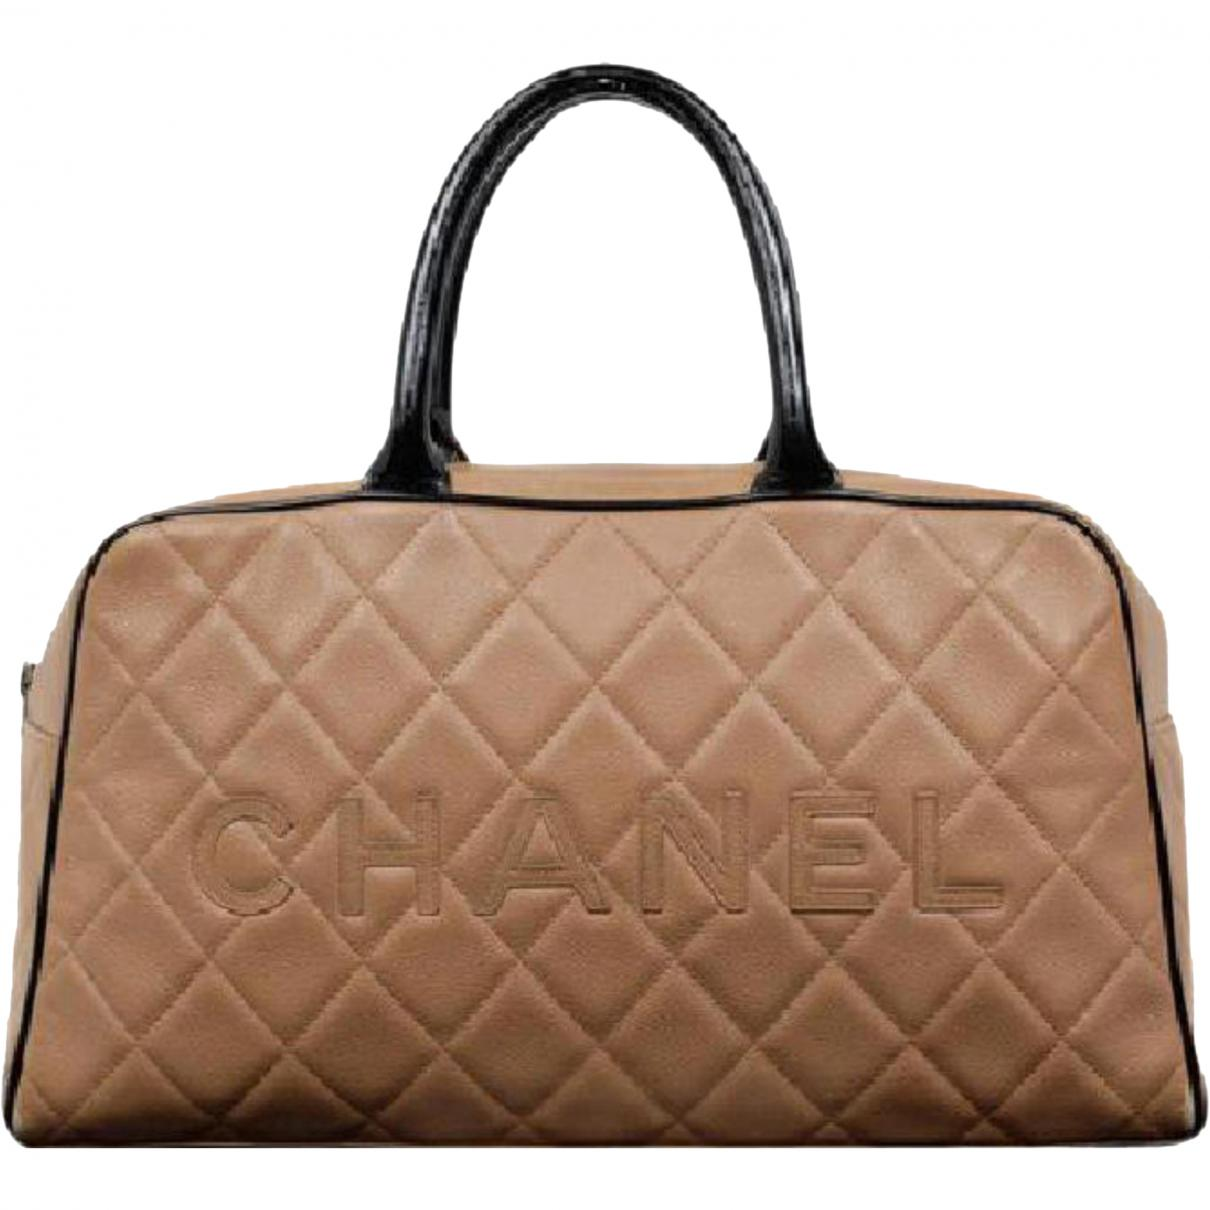 5adbac38e3c0 Lyst - Chanel Leather Satchel in Natural - Save 7%